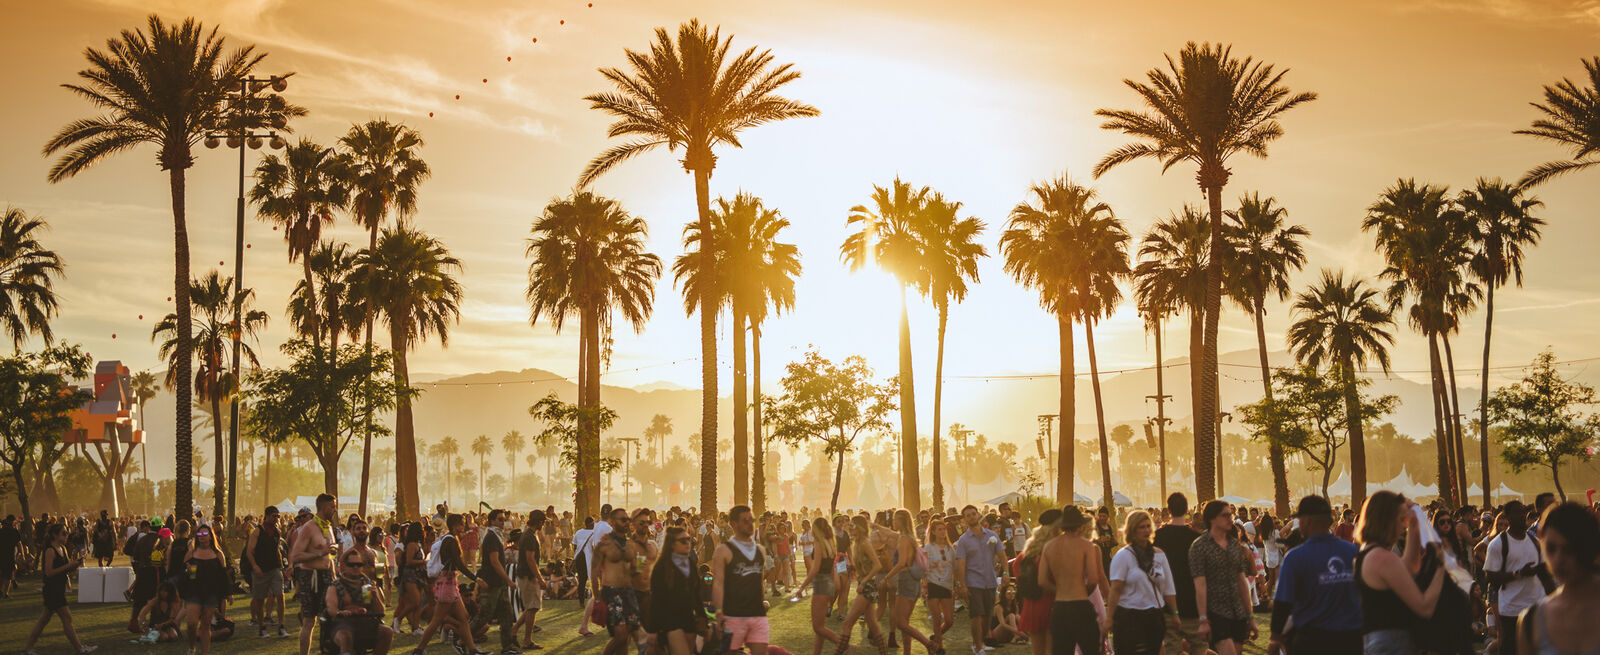 Coachella Music Festival Weekend 2 with Beyoncé, Eminem, The Weeknd, and more Tickets (April 20-22)